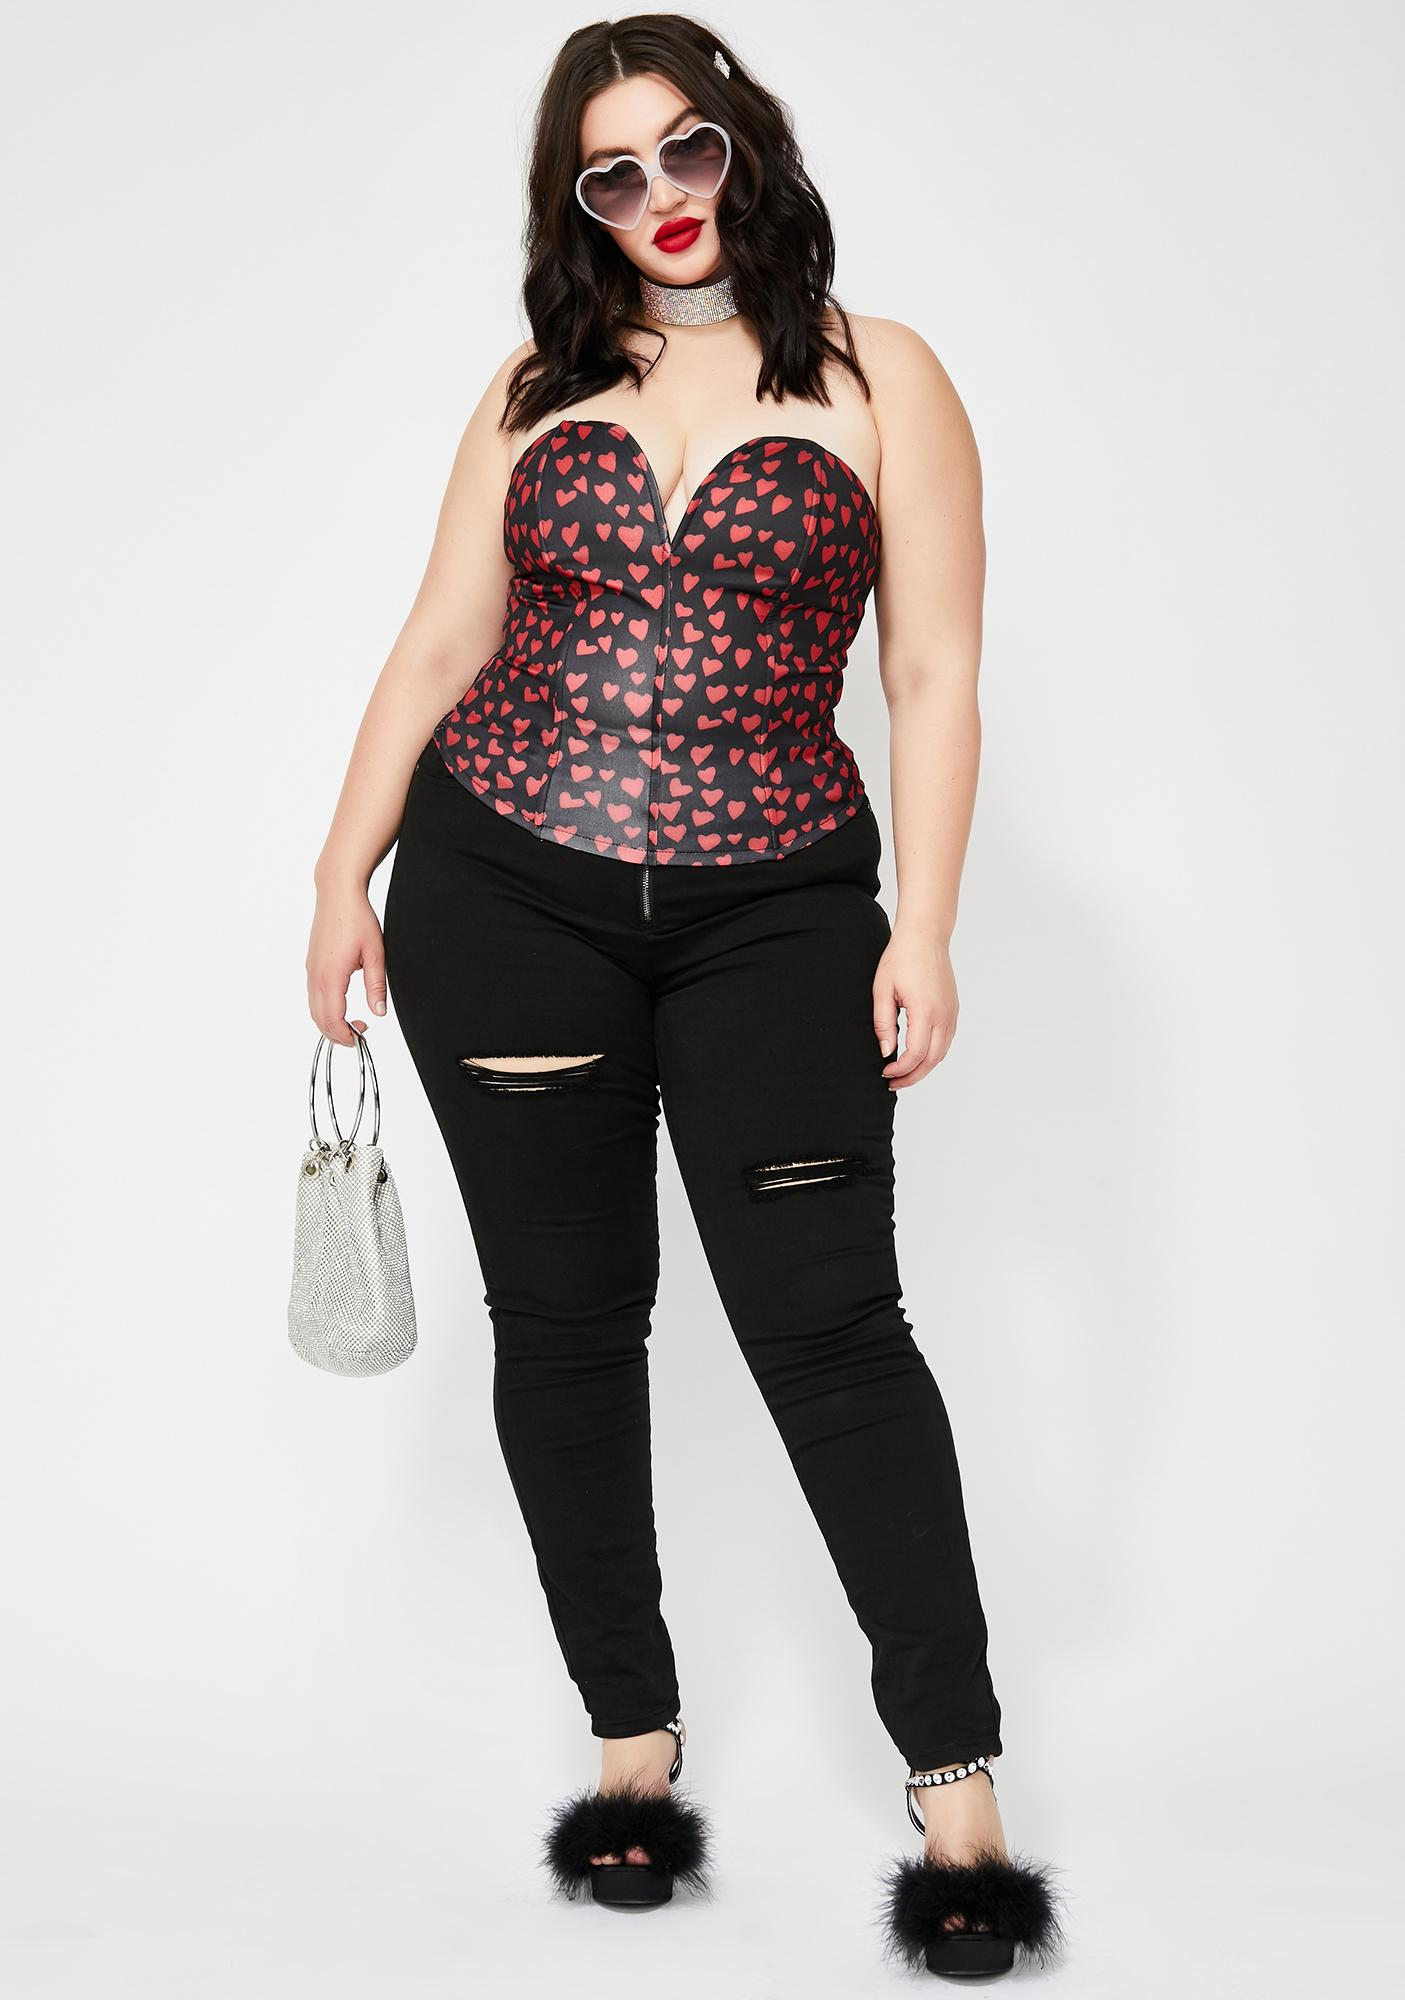 Mz Lovely Obsession Heart Bustier